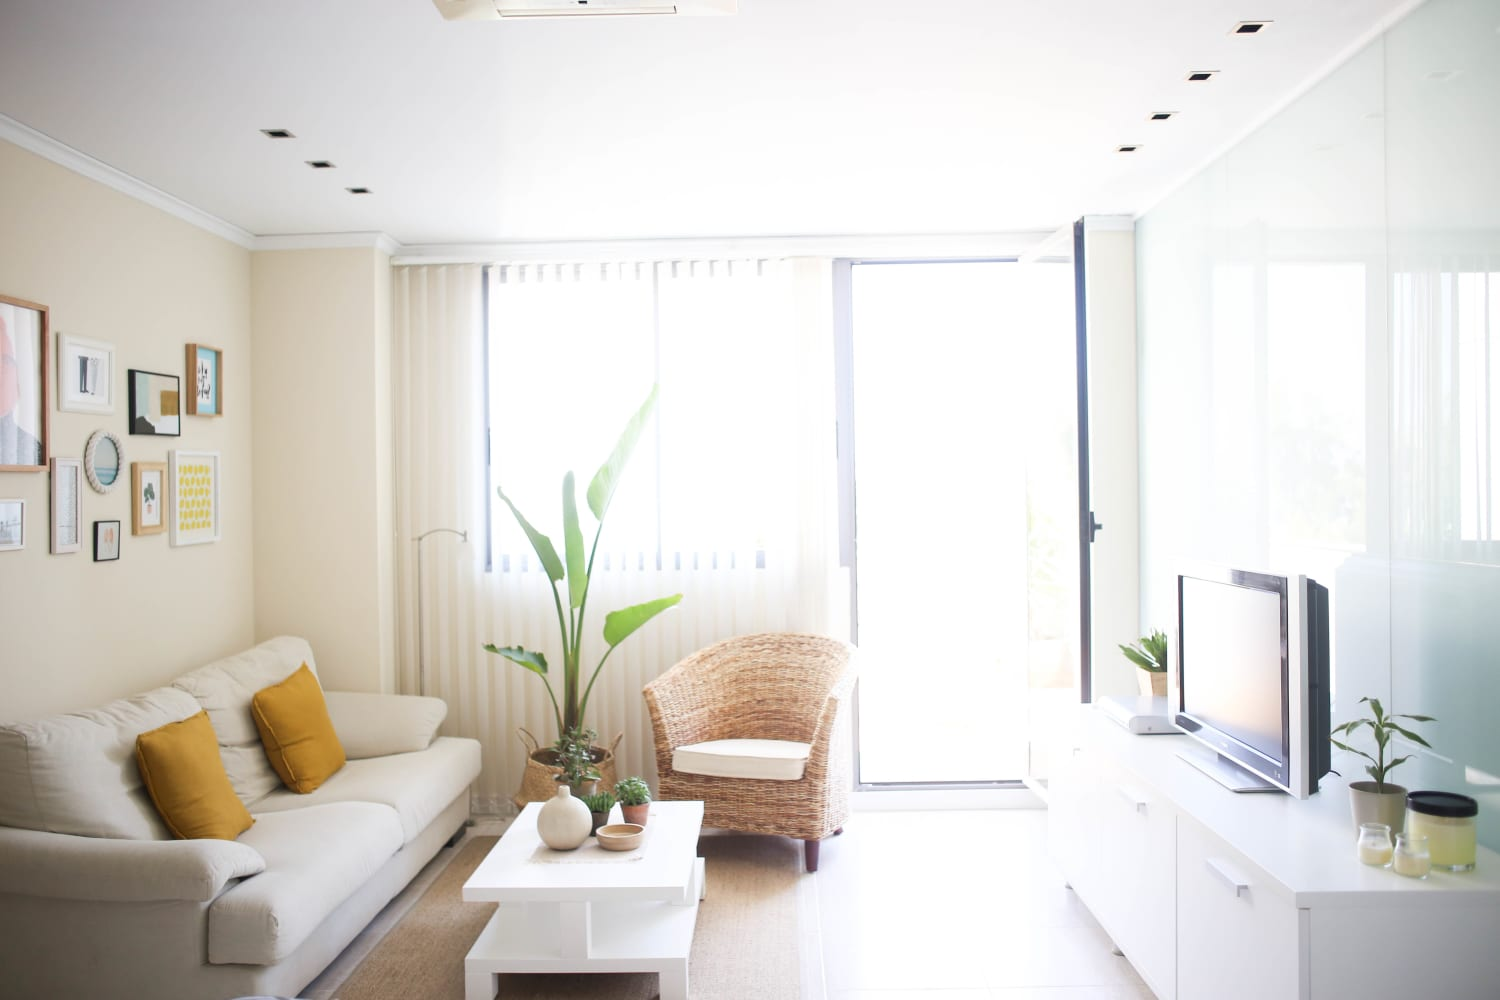 Get the Look: Bright White Modernism in Spain